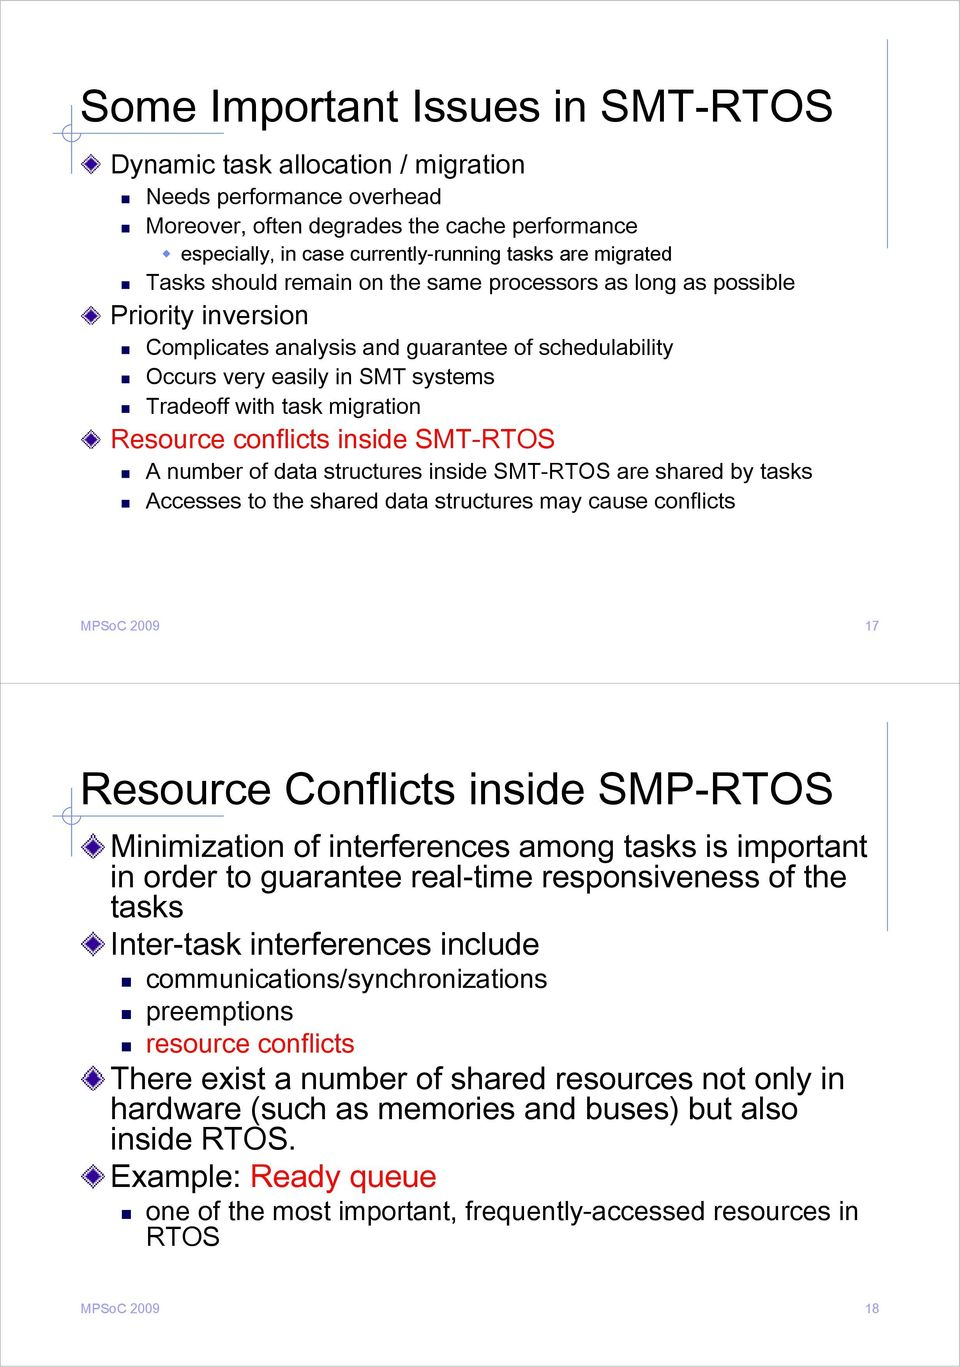 migration Resource conflicts inside SMT-RTOS A number of data structures inside SMT-RTOS are shared by tasks Accesses to the shared data structures may cause conflicts MPSoC 2009 17 Resource